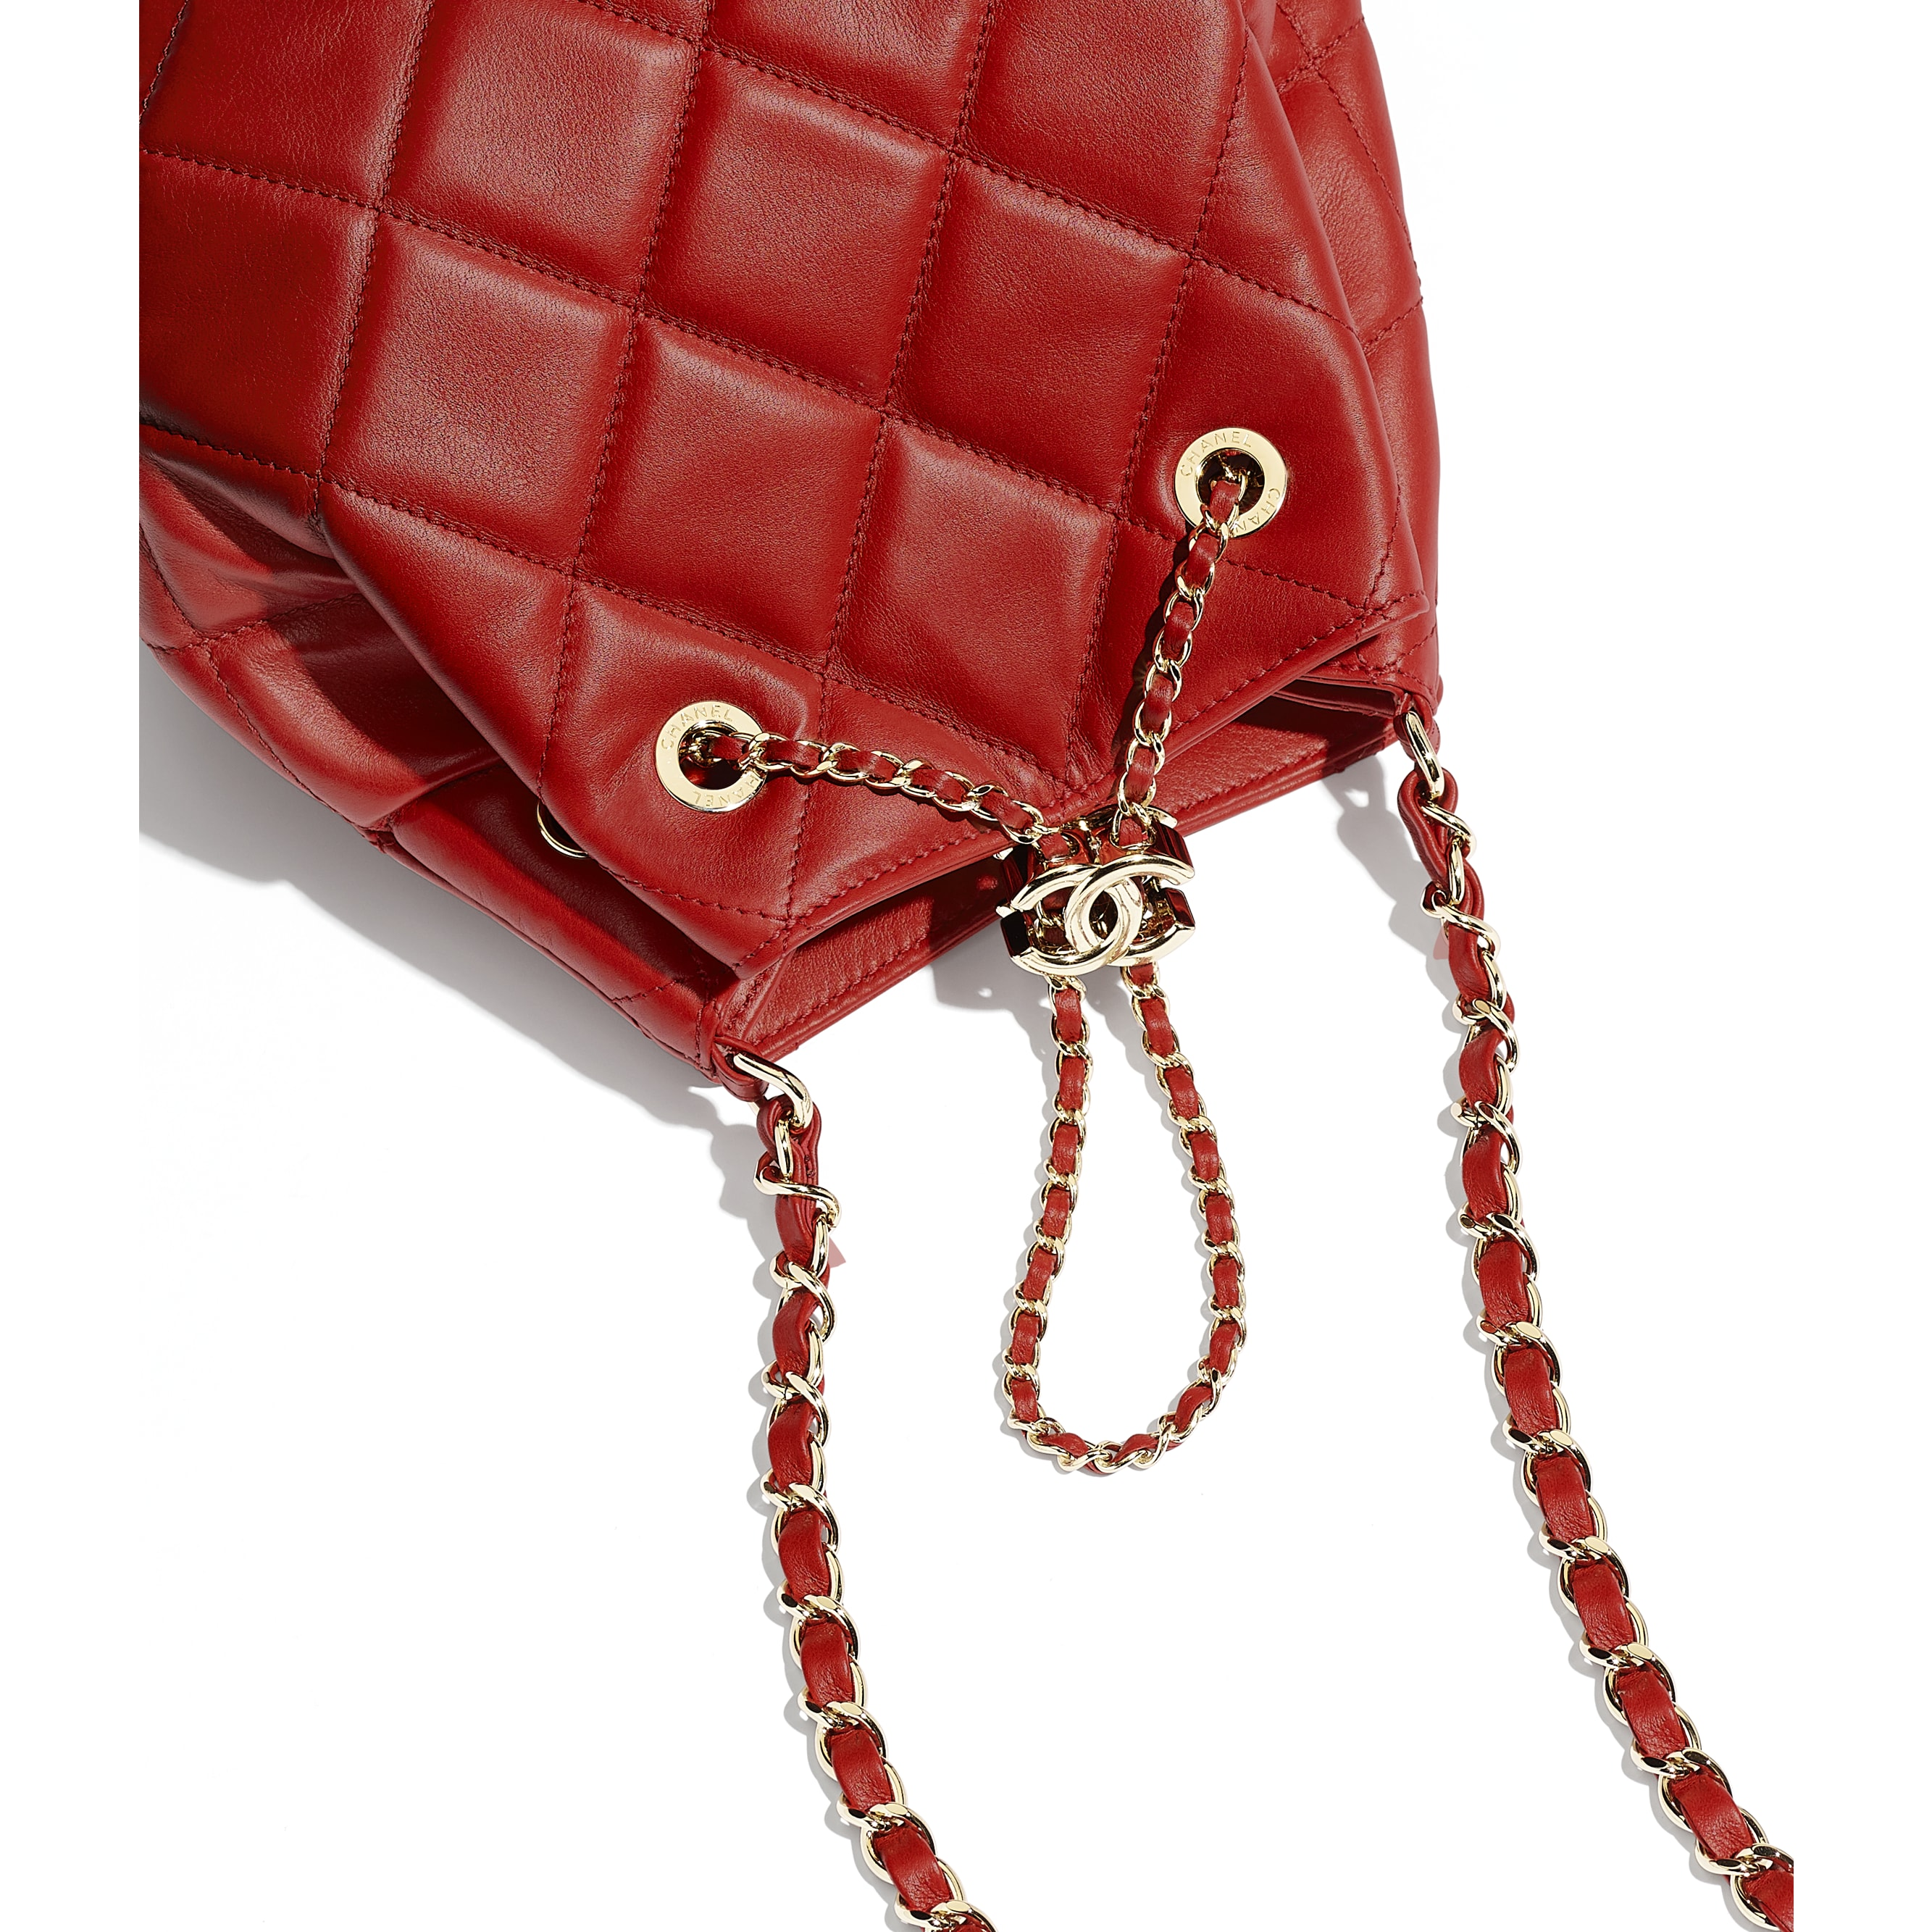 Drawstring Bag - Red - Lambskin & Gold-Tone Metal - CHANEL - Extra view - see standard sized version